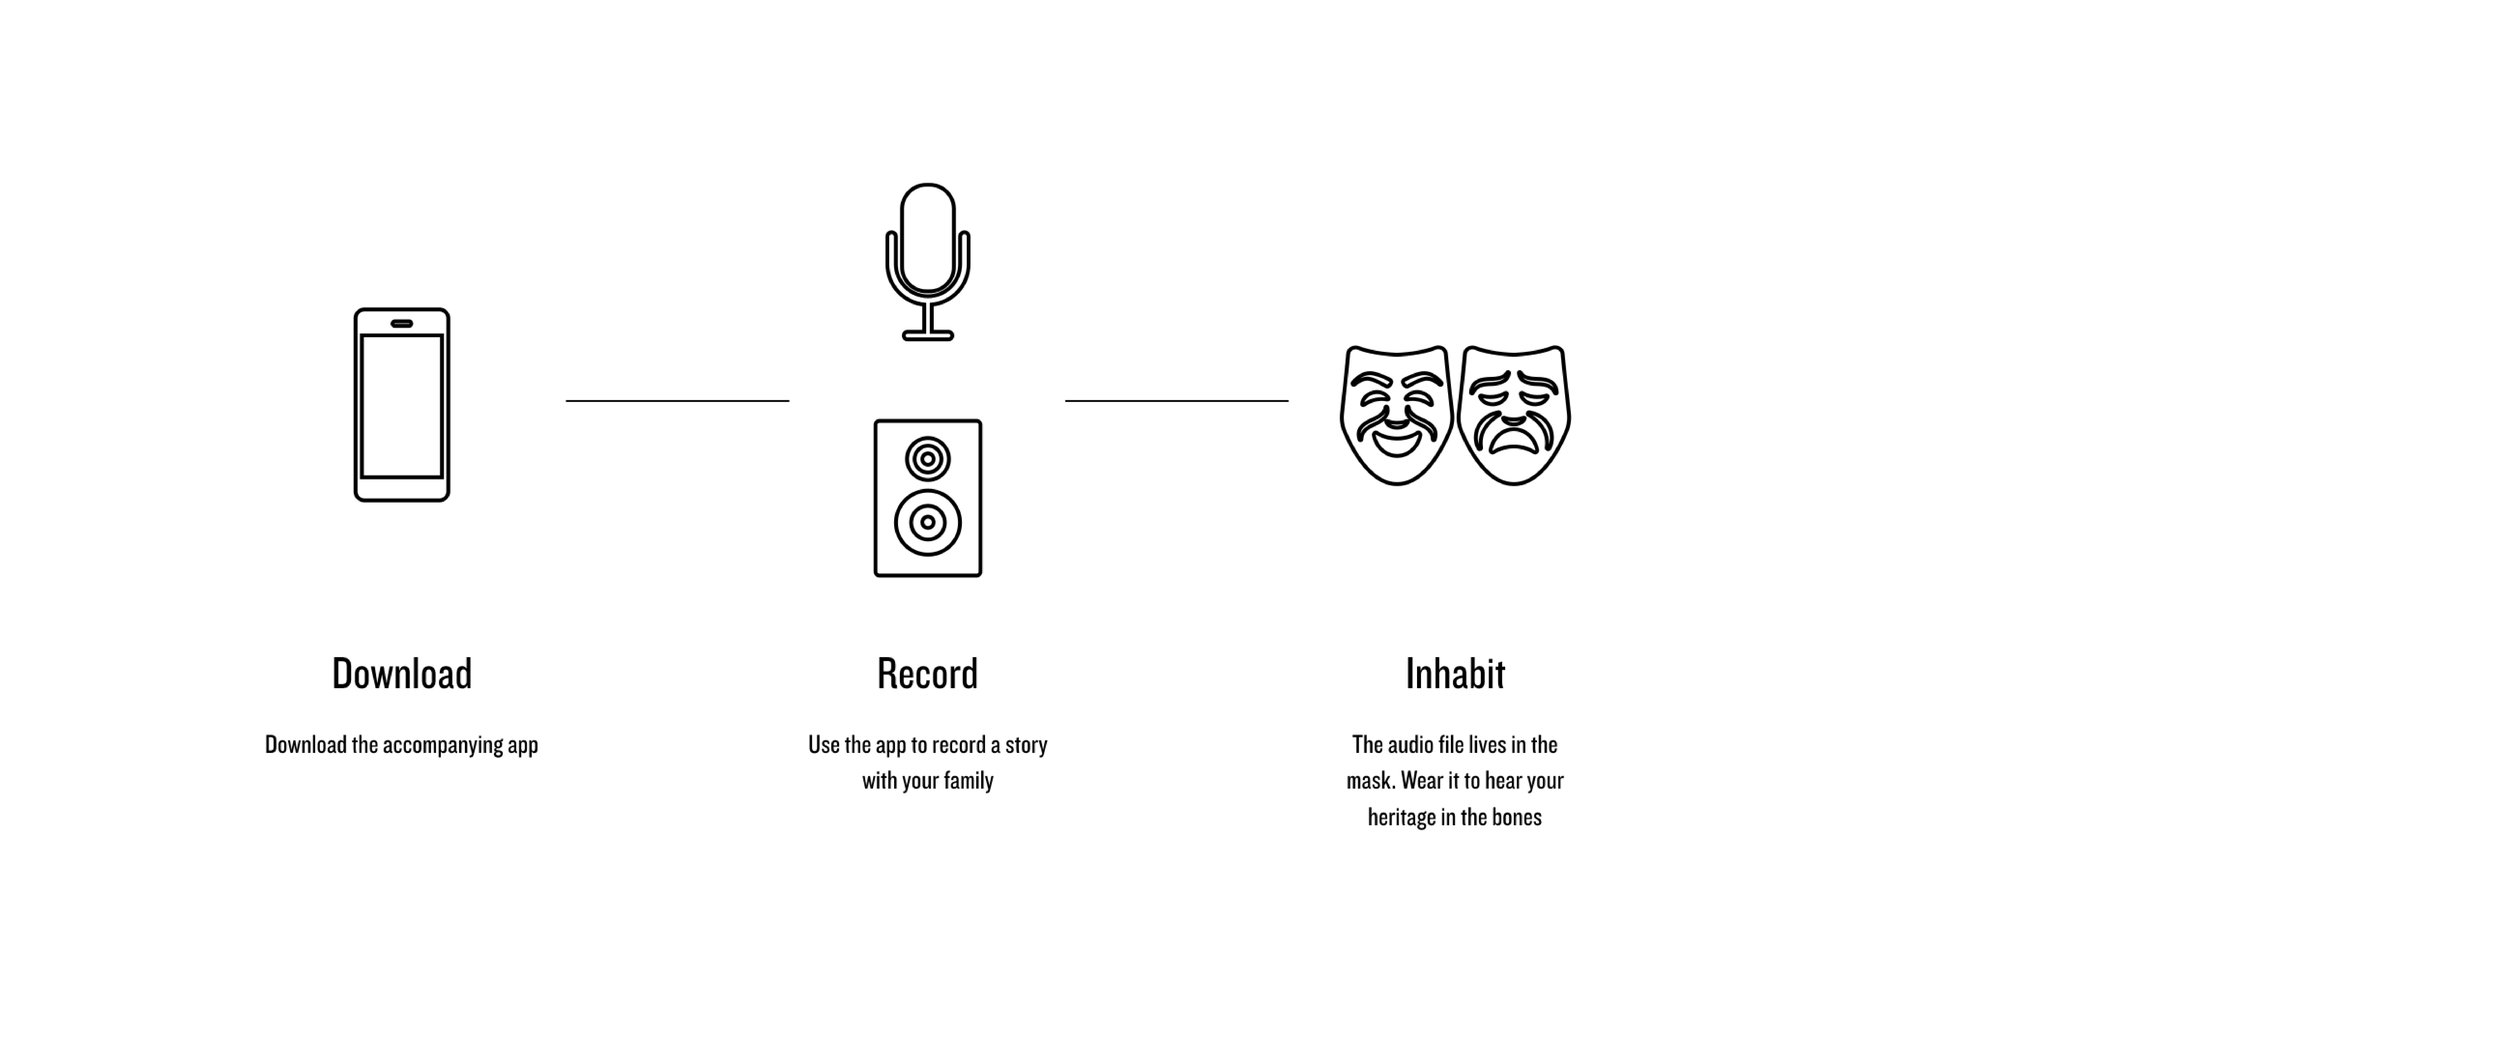 3 Steps - 1. Download Xenophone's accompanying app on a smartphone.2. Open this app with, say, your grandmother, and record her story of how she migrated to the US, a story that might otherwise go untold. Sync the app with the actual Xenophone mask-speaker, so that the audio file is stored within it.3. Turn on the mask, wear it, and hear grandmother's story through your bones to connect with with it in an intimate way.